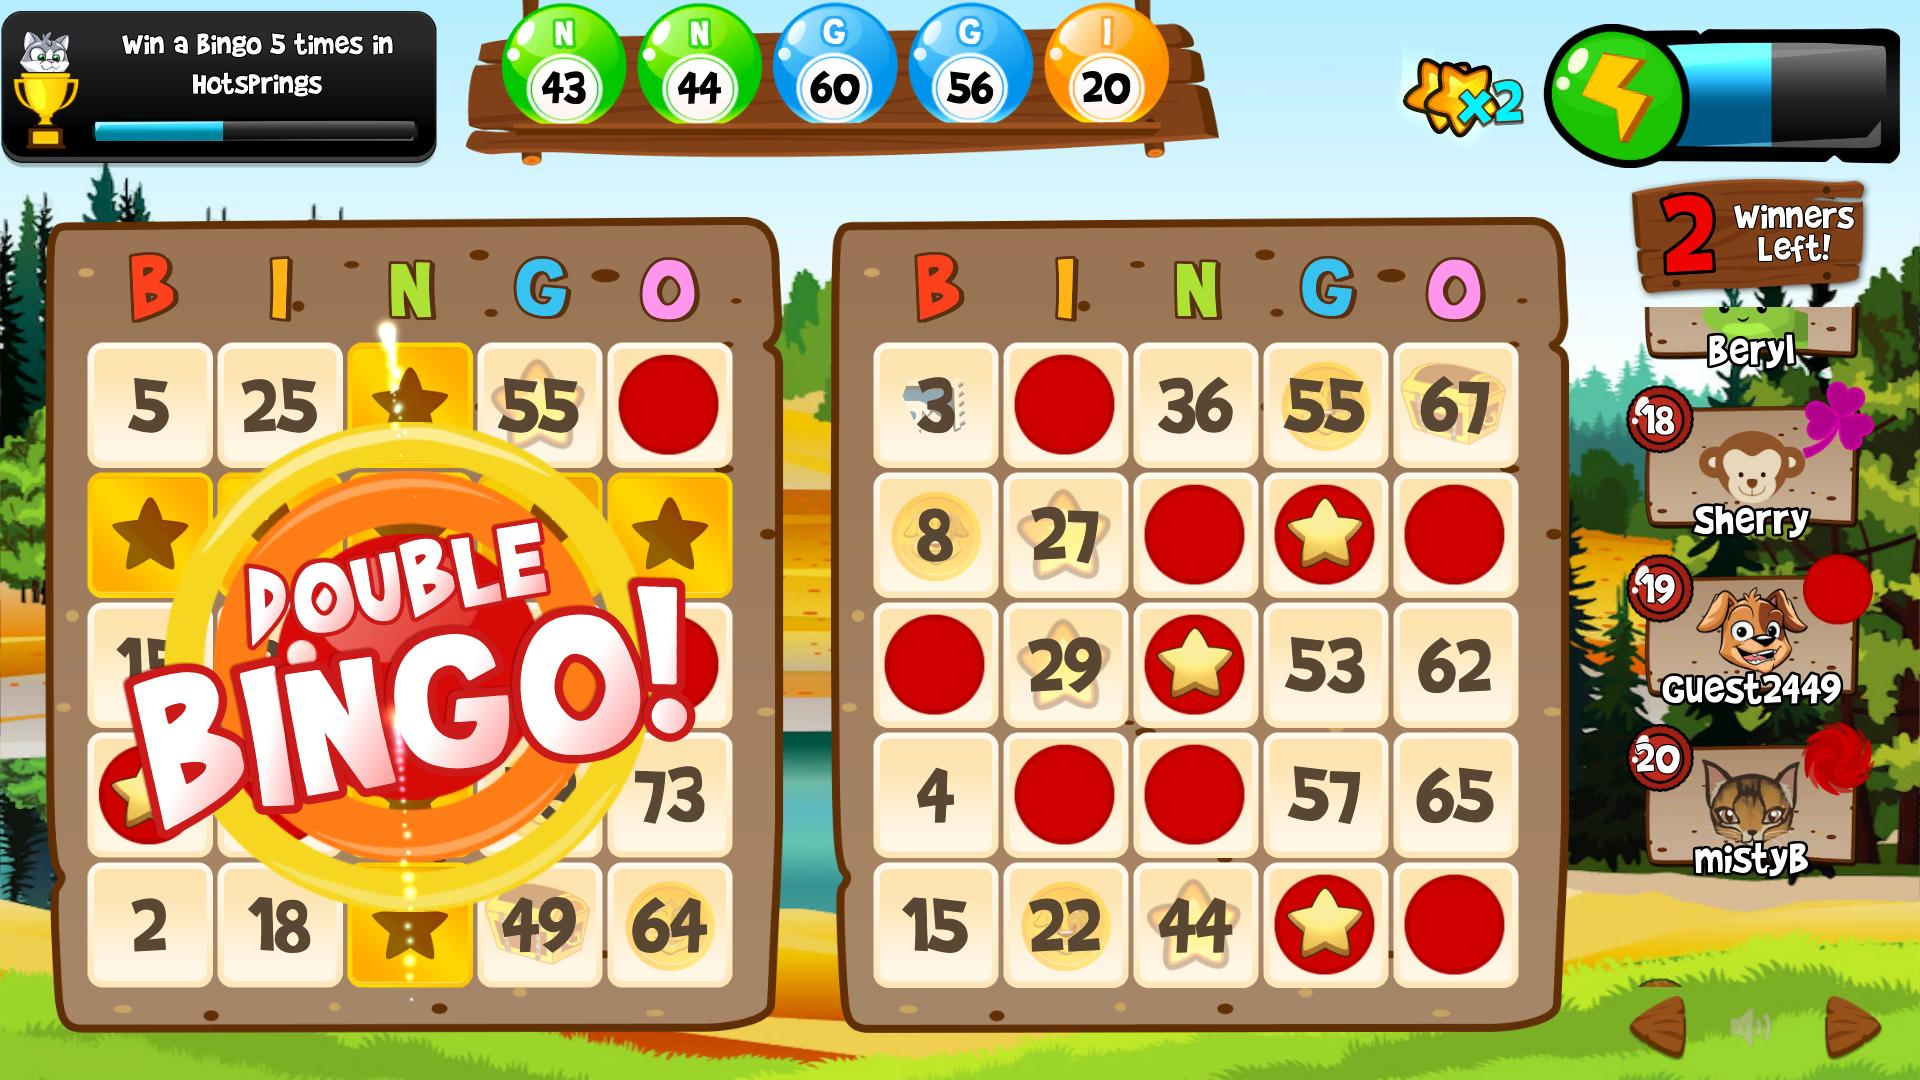 Bingo Abradoodle - Bingo Games Free to Play! 3.0.02 Screenshot 1